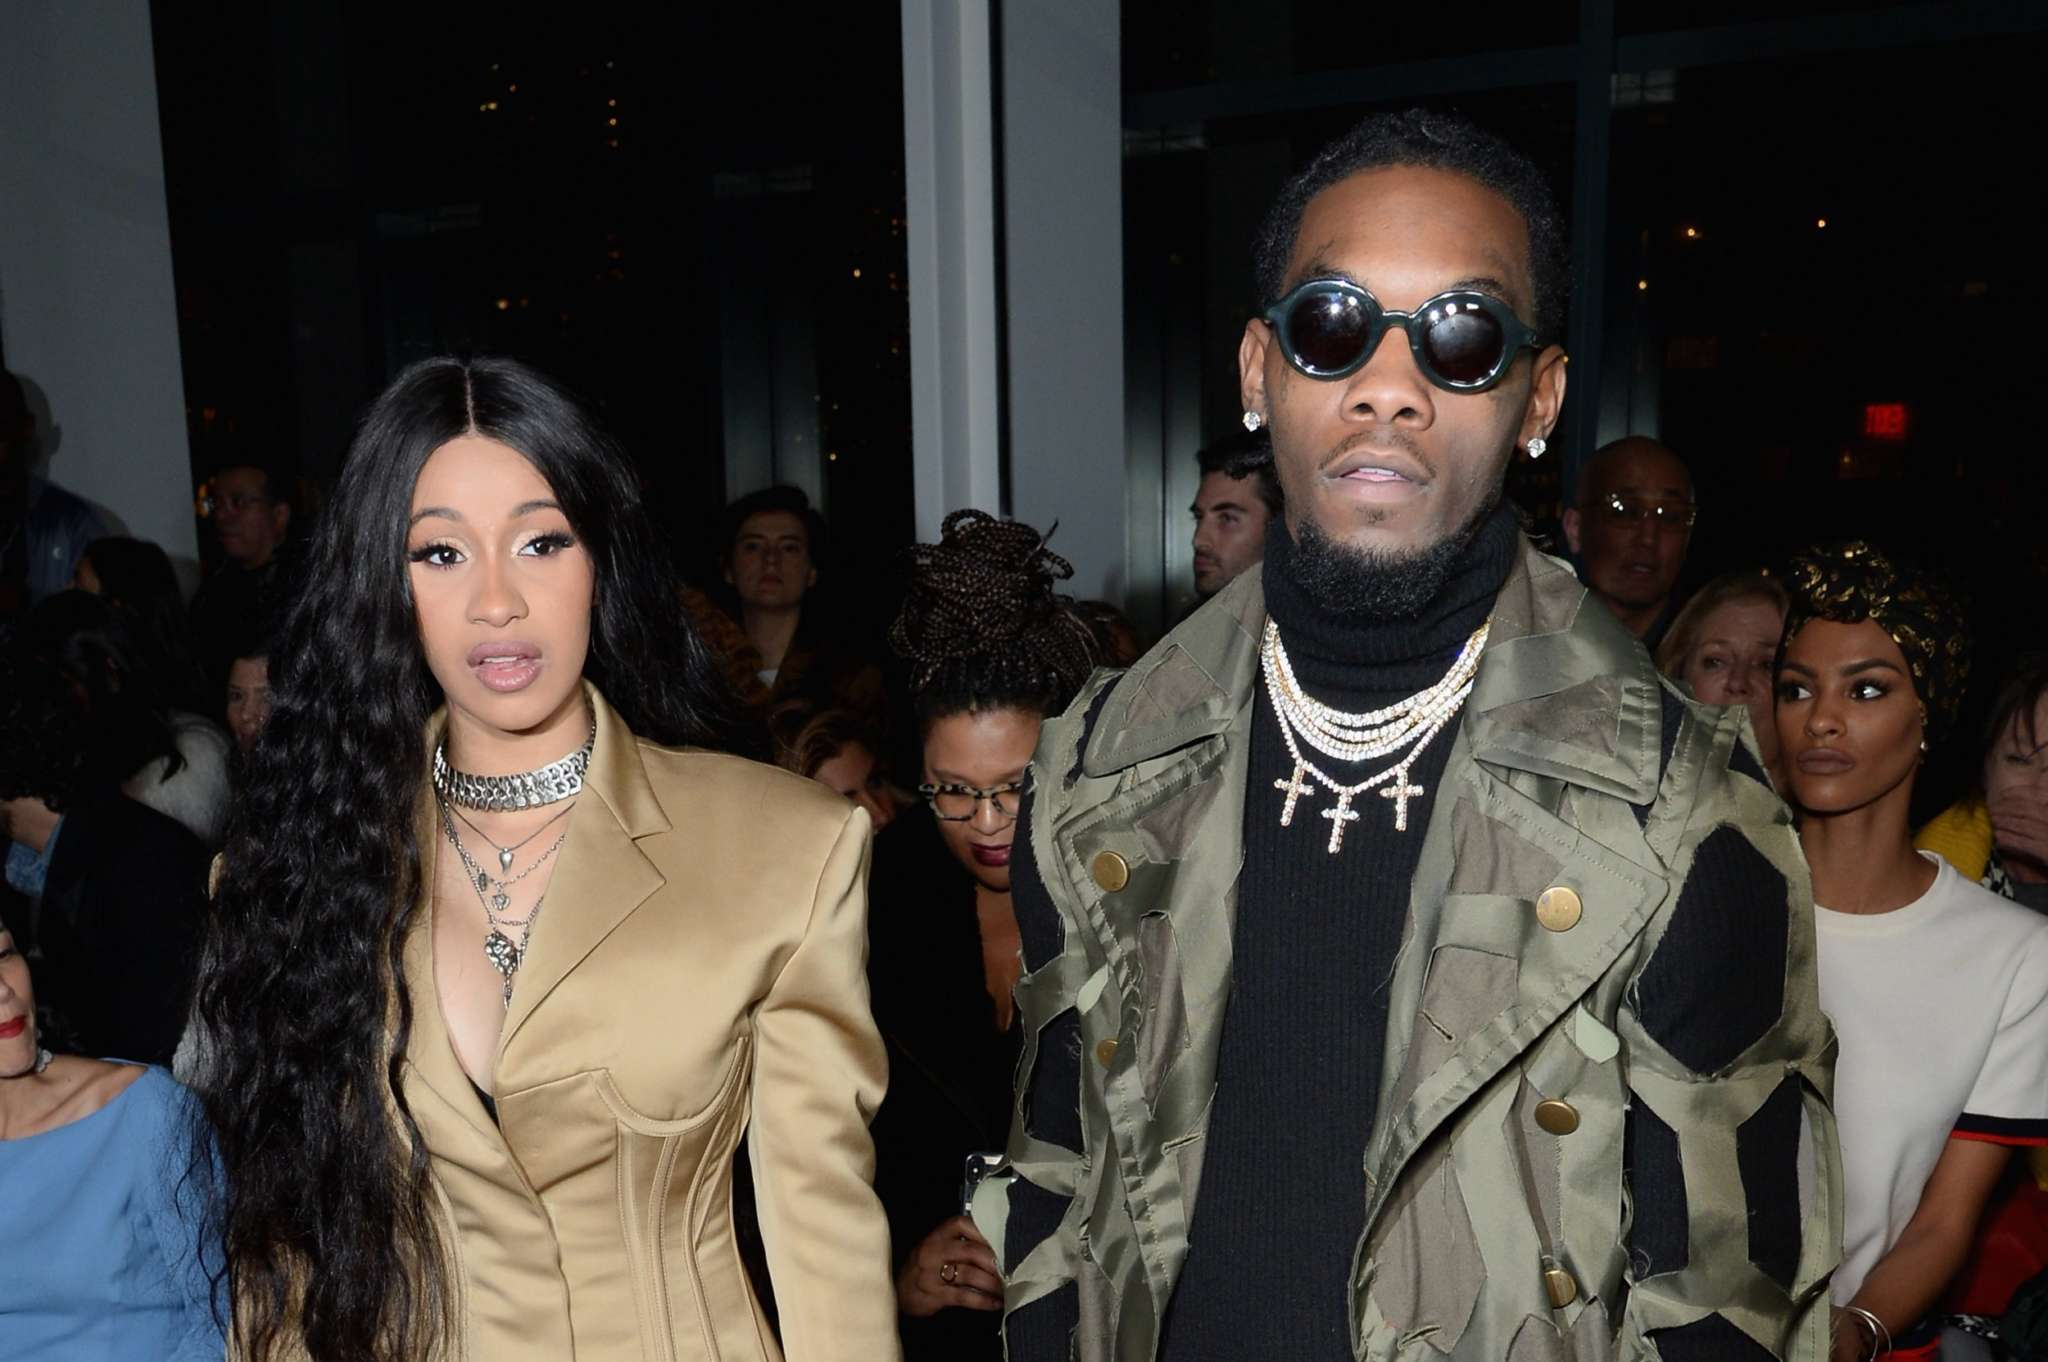 Offset Addresses New Cheating Accusations After Fans Catch Him Hiding Phone From Cardi B